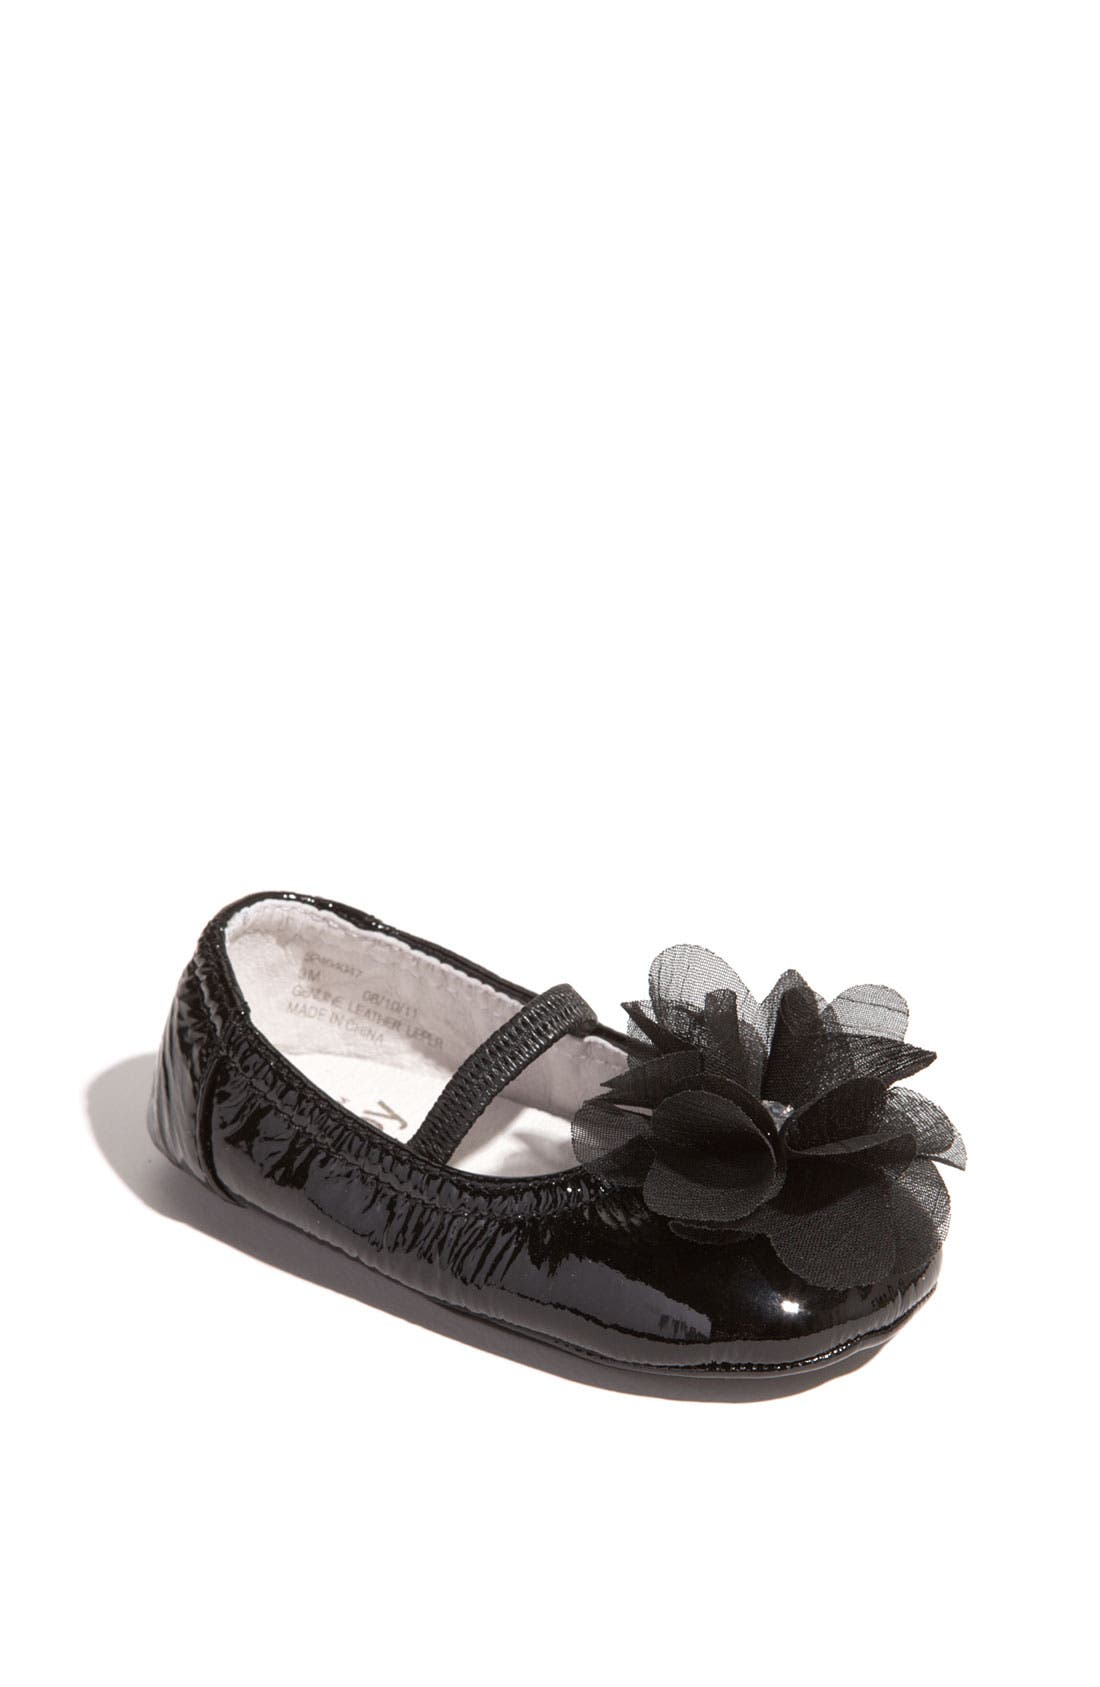 Main Image - Nordstrom Baby 'Pretty' Dress Shoe (Infant)